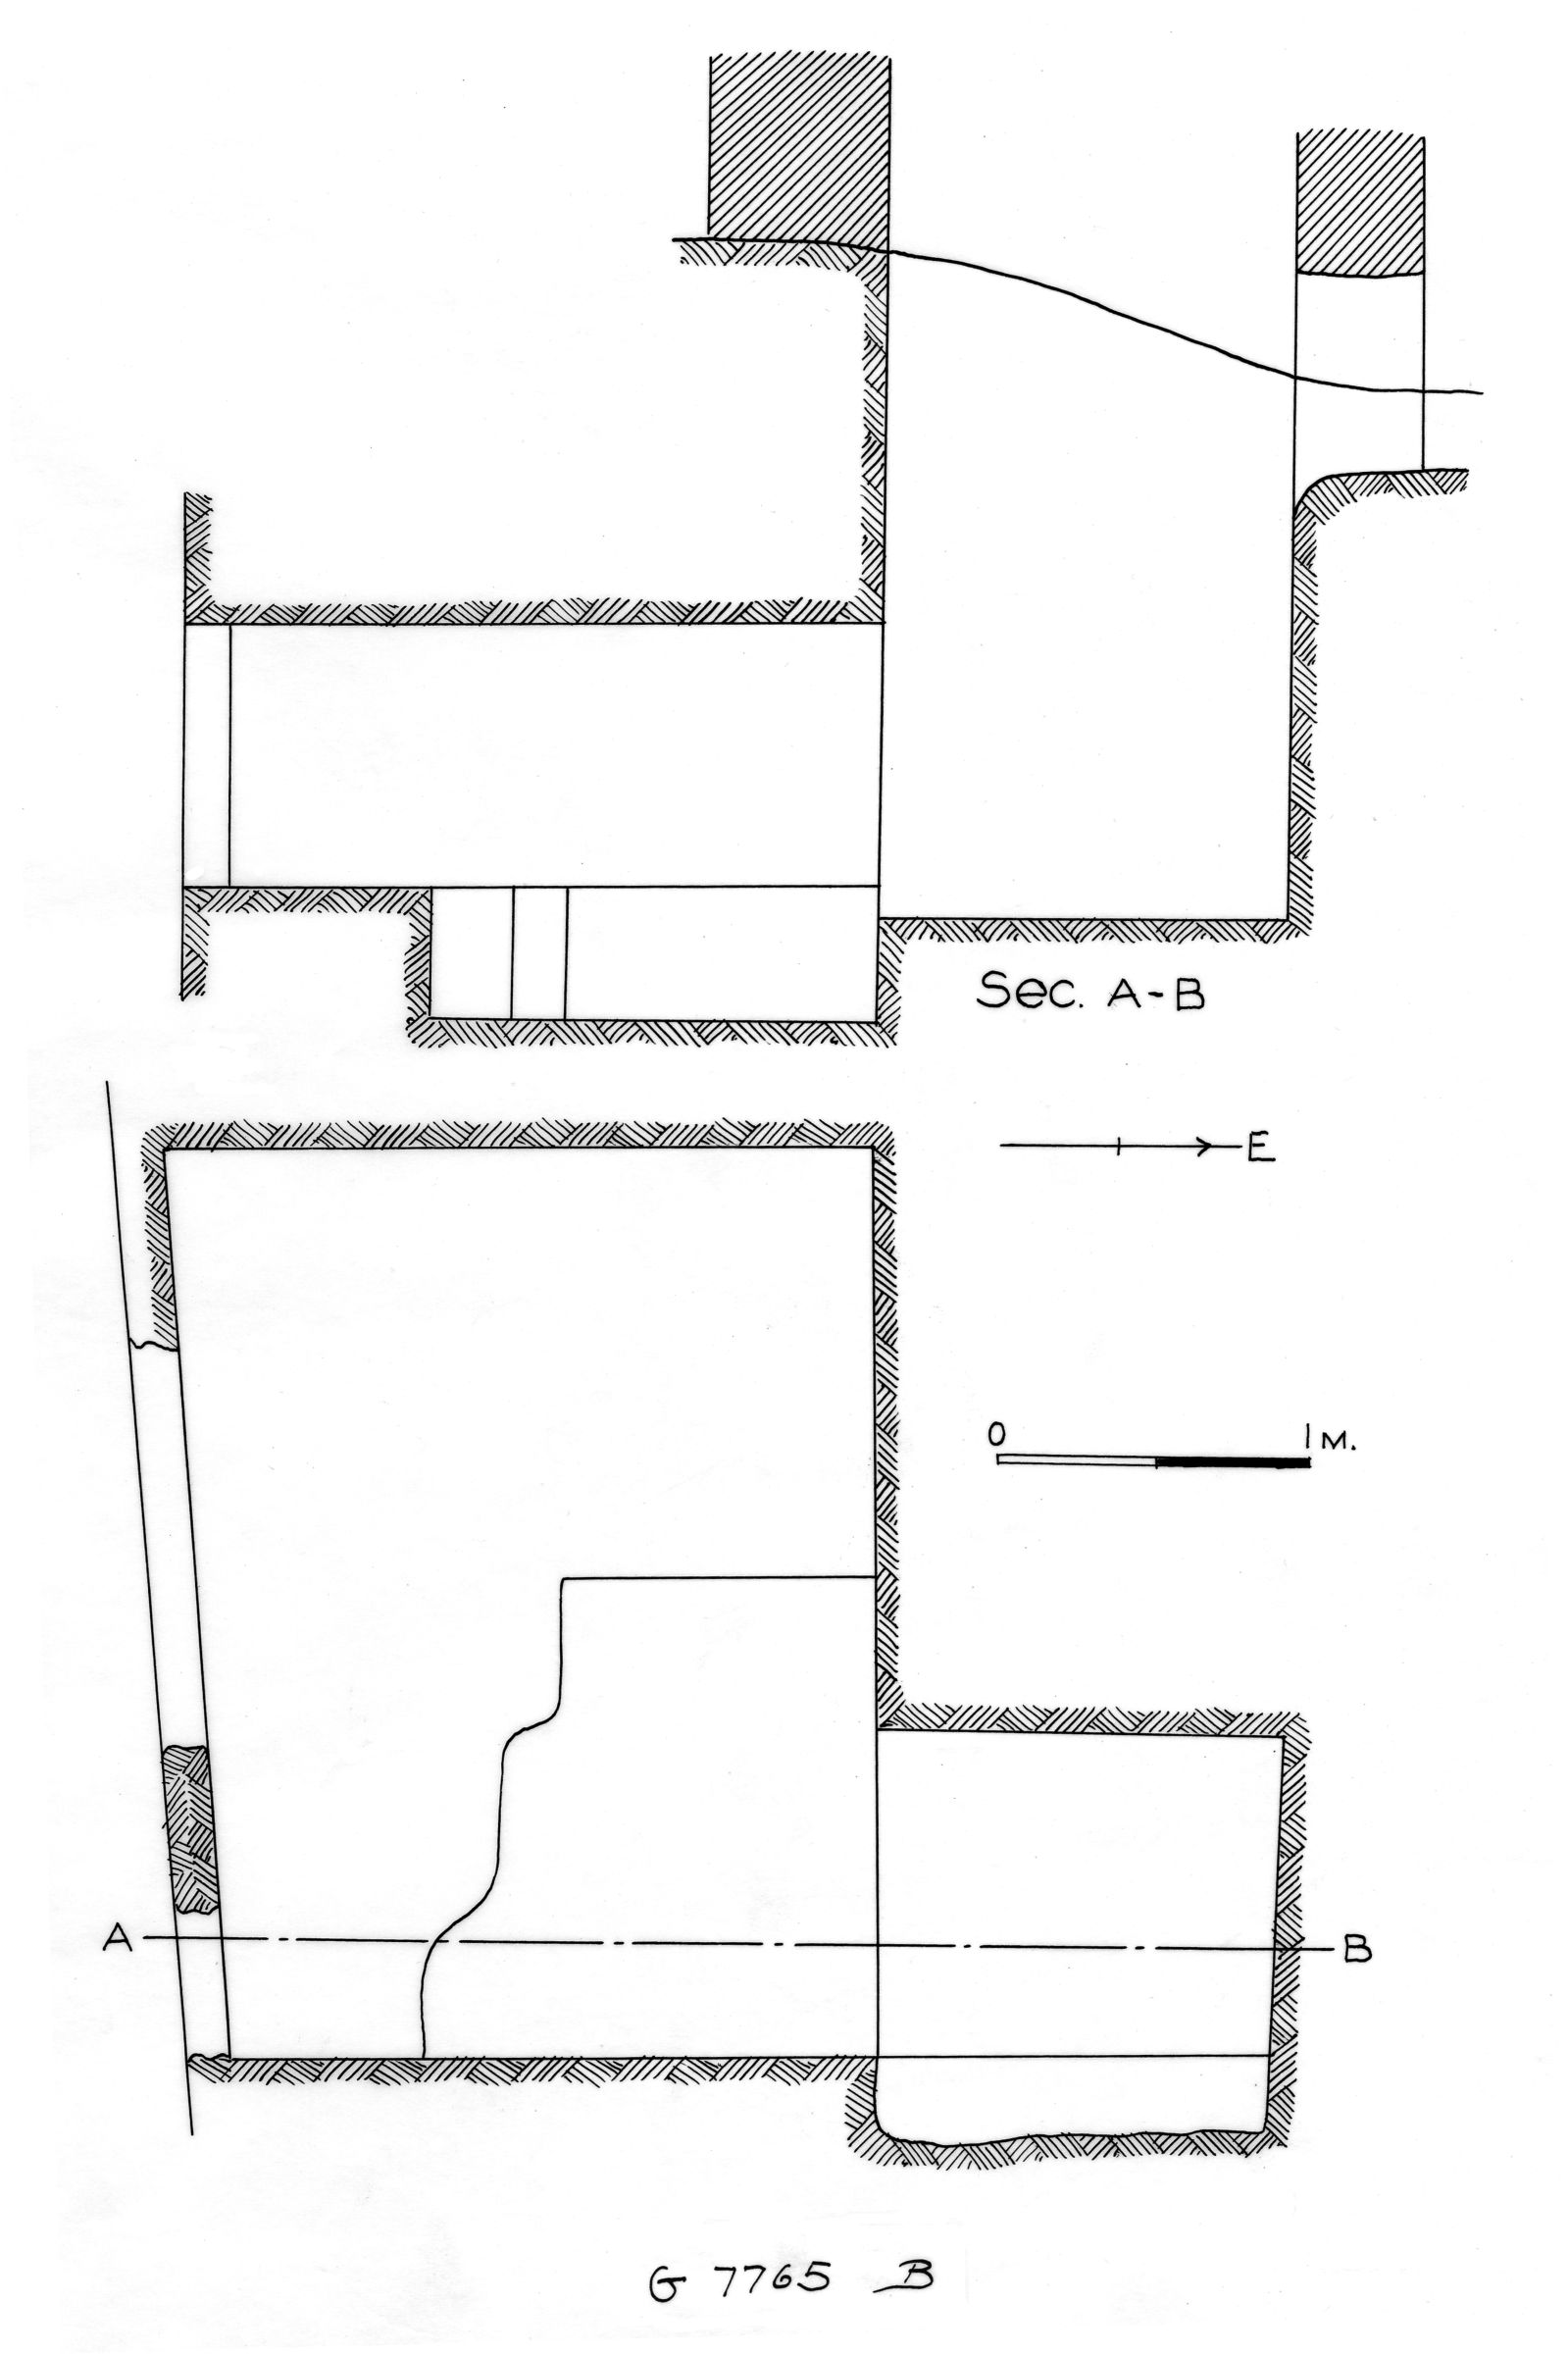 Maps and plans: G 7765, Shaft B